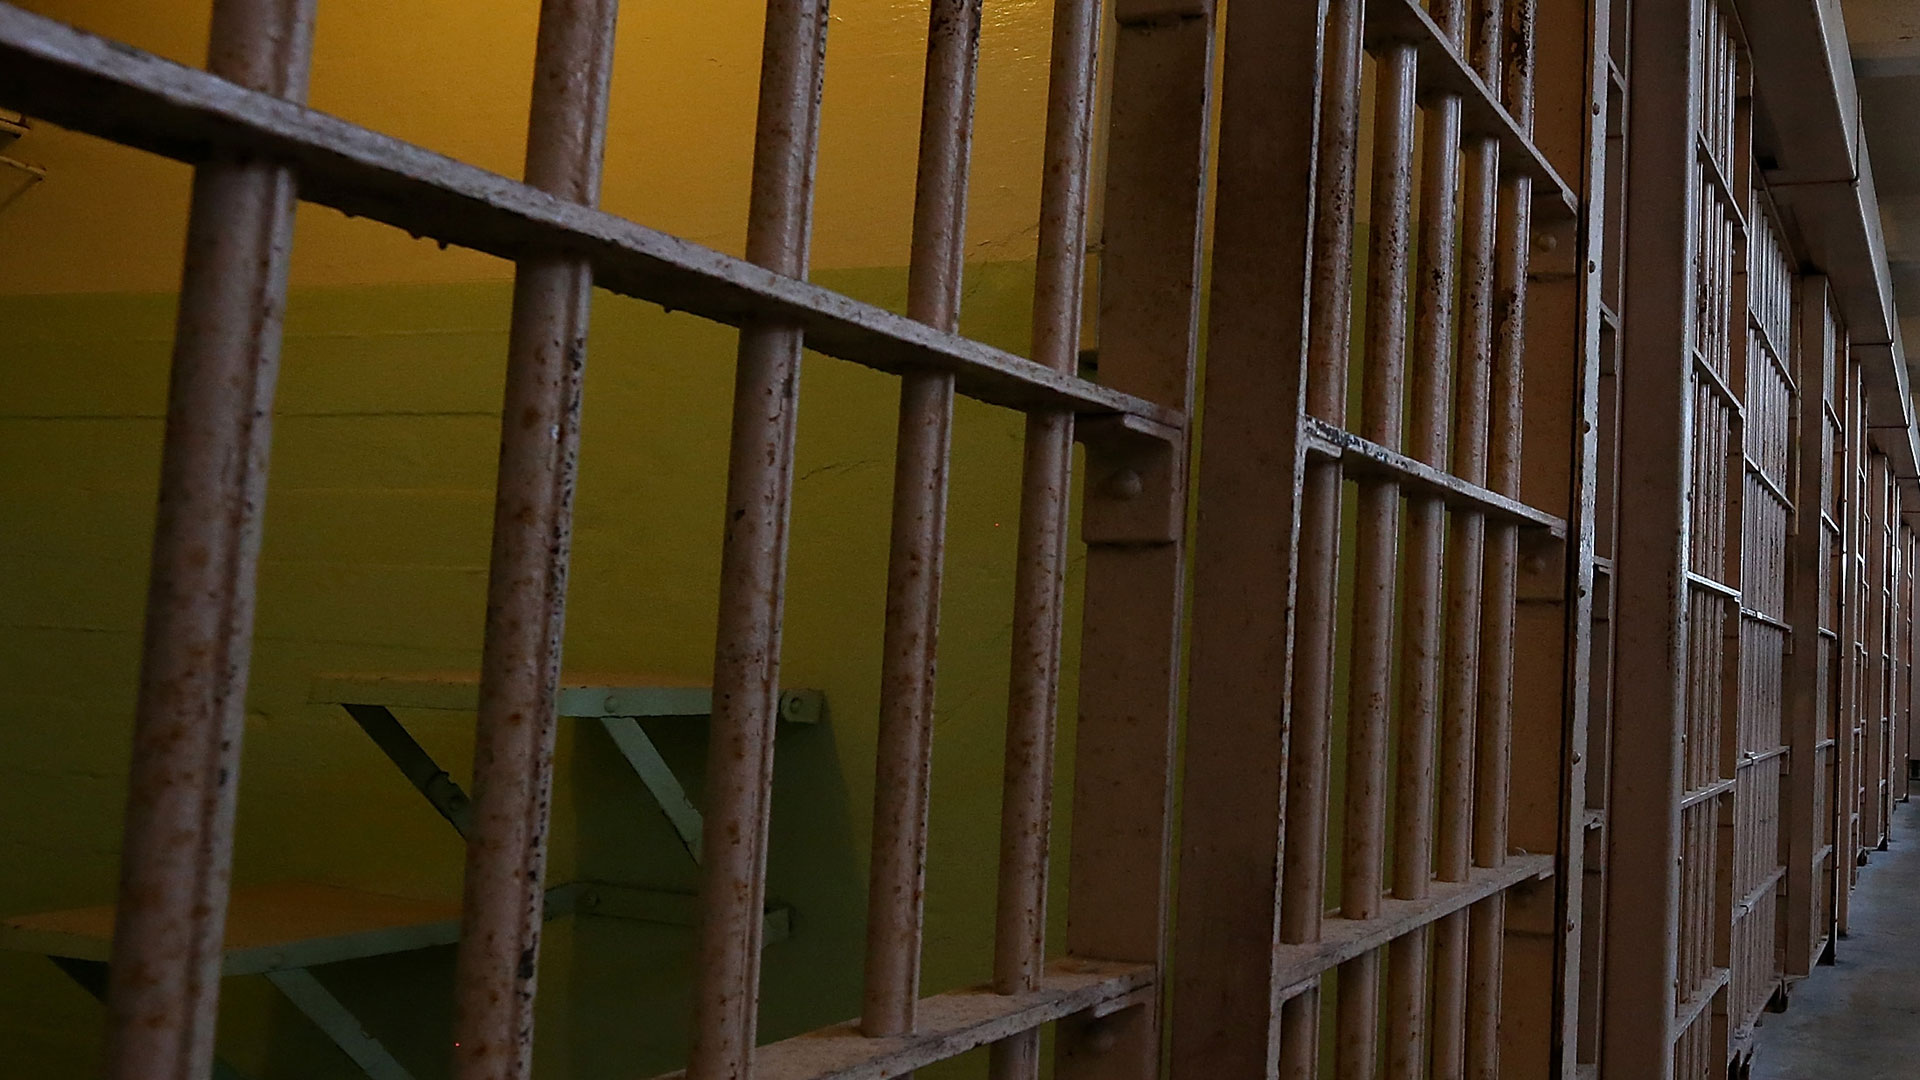 Jail cell (Photo by Justin Sullivan/Getty Images)